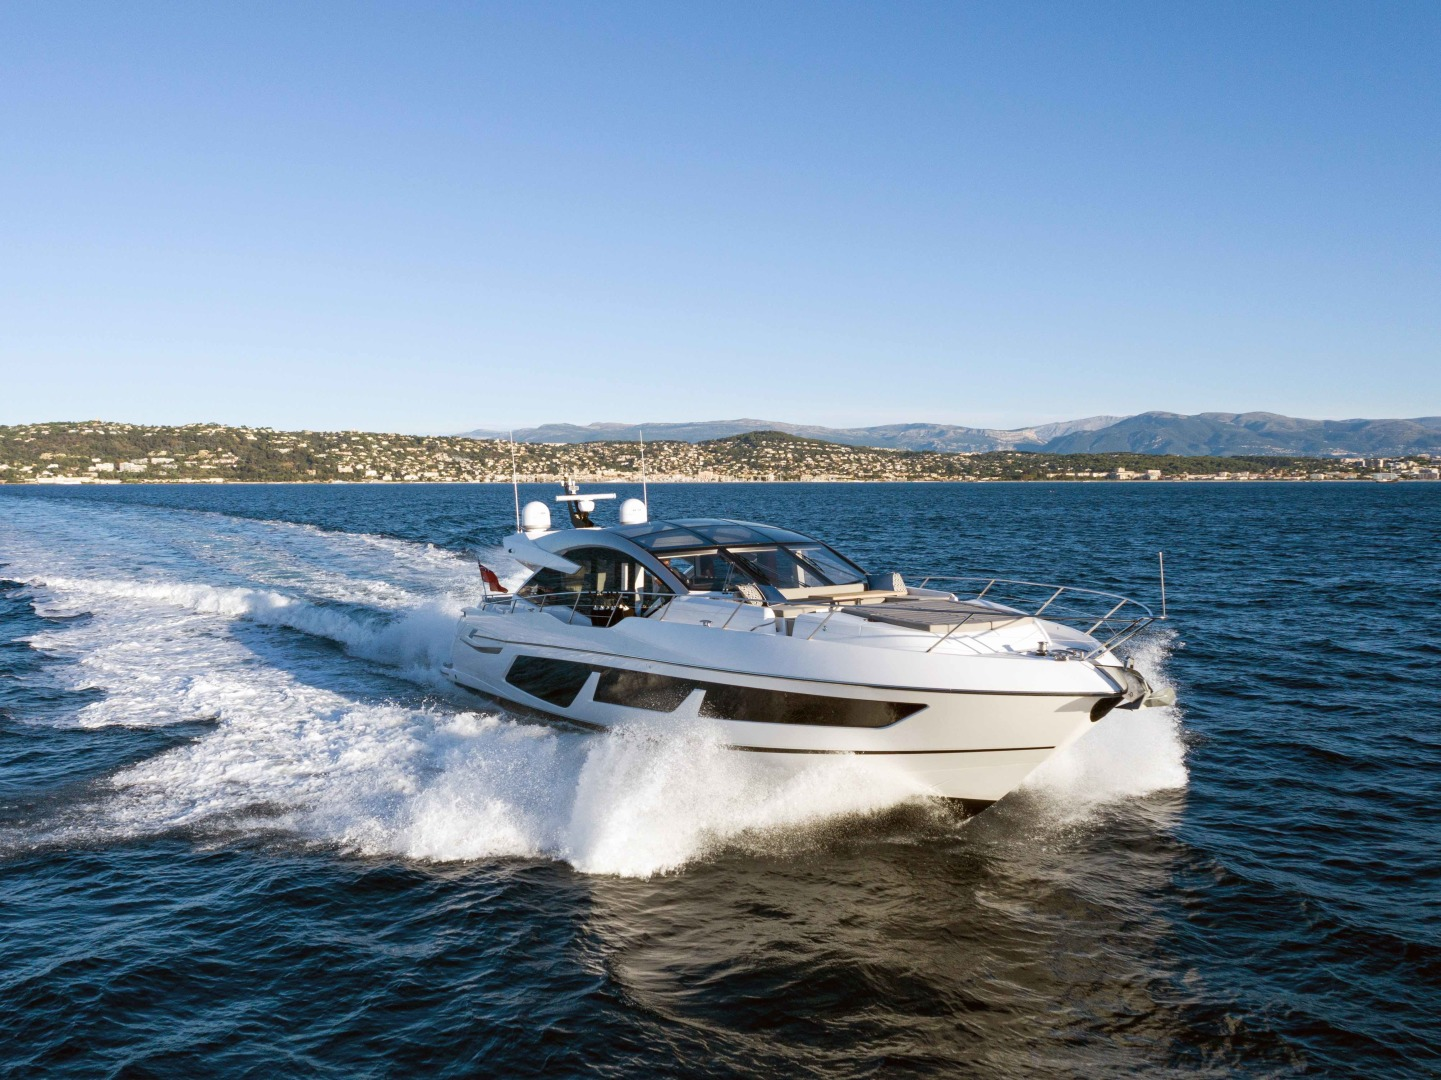 H-yacht-for-sale-charter-01.jpg